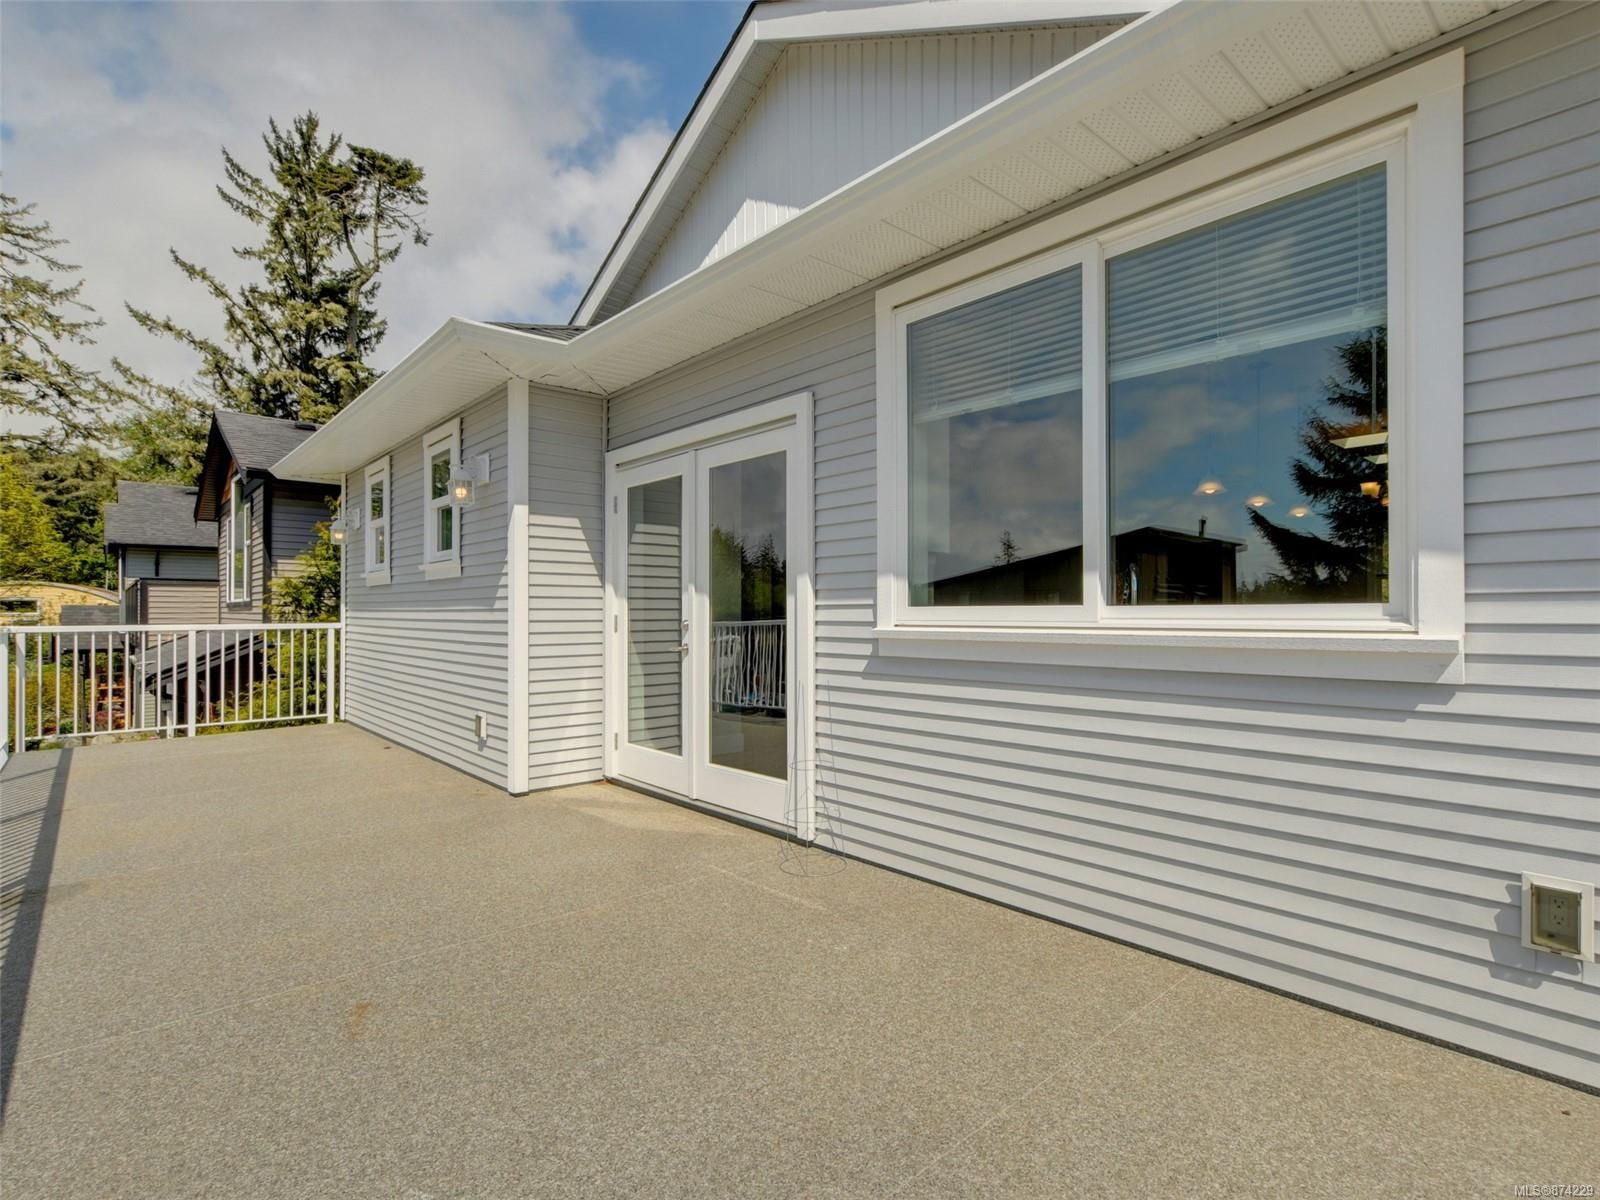 Photo 21: Photos: 1921 Tominny Rd in : Sk Sooke Vill Core House for sale (Sooke)  : MLS®# 874229